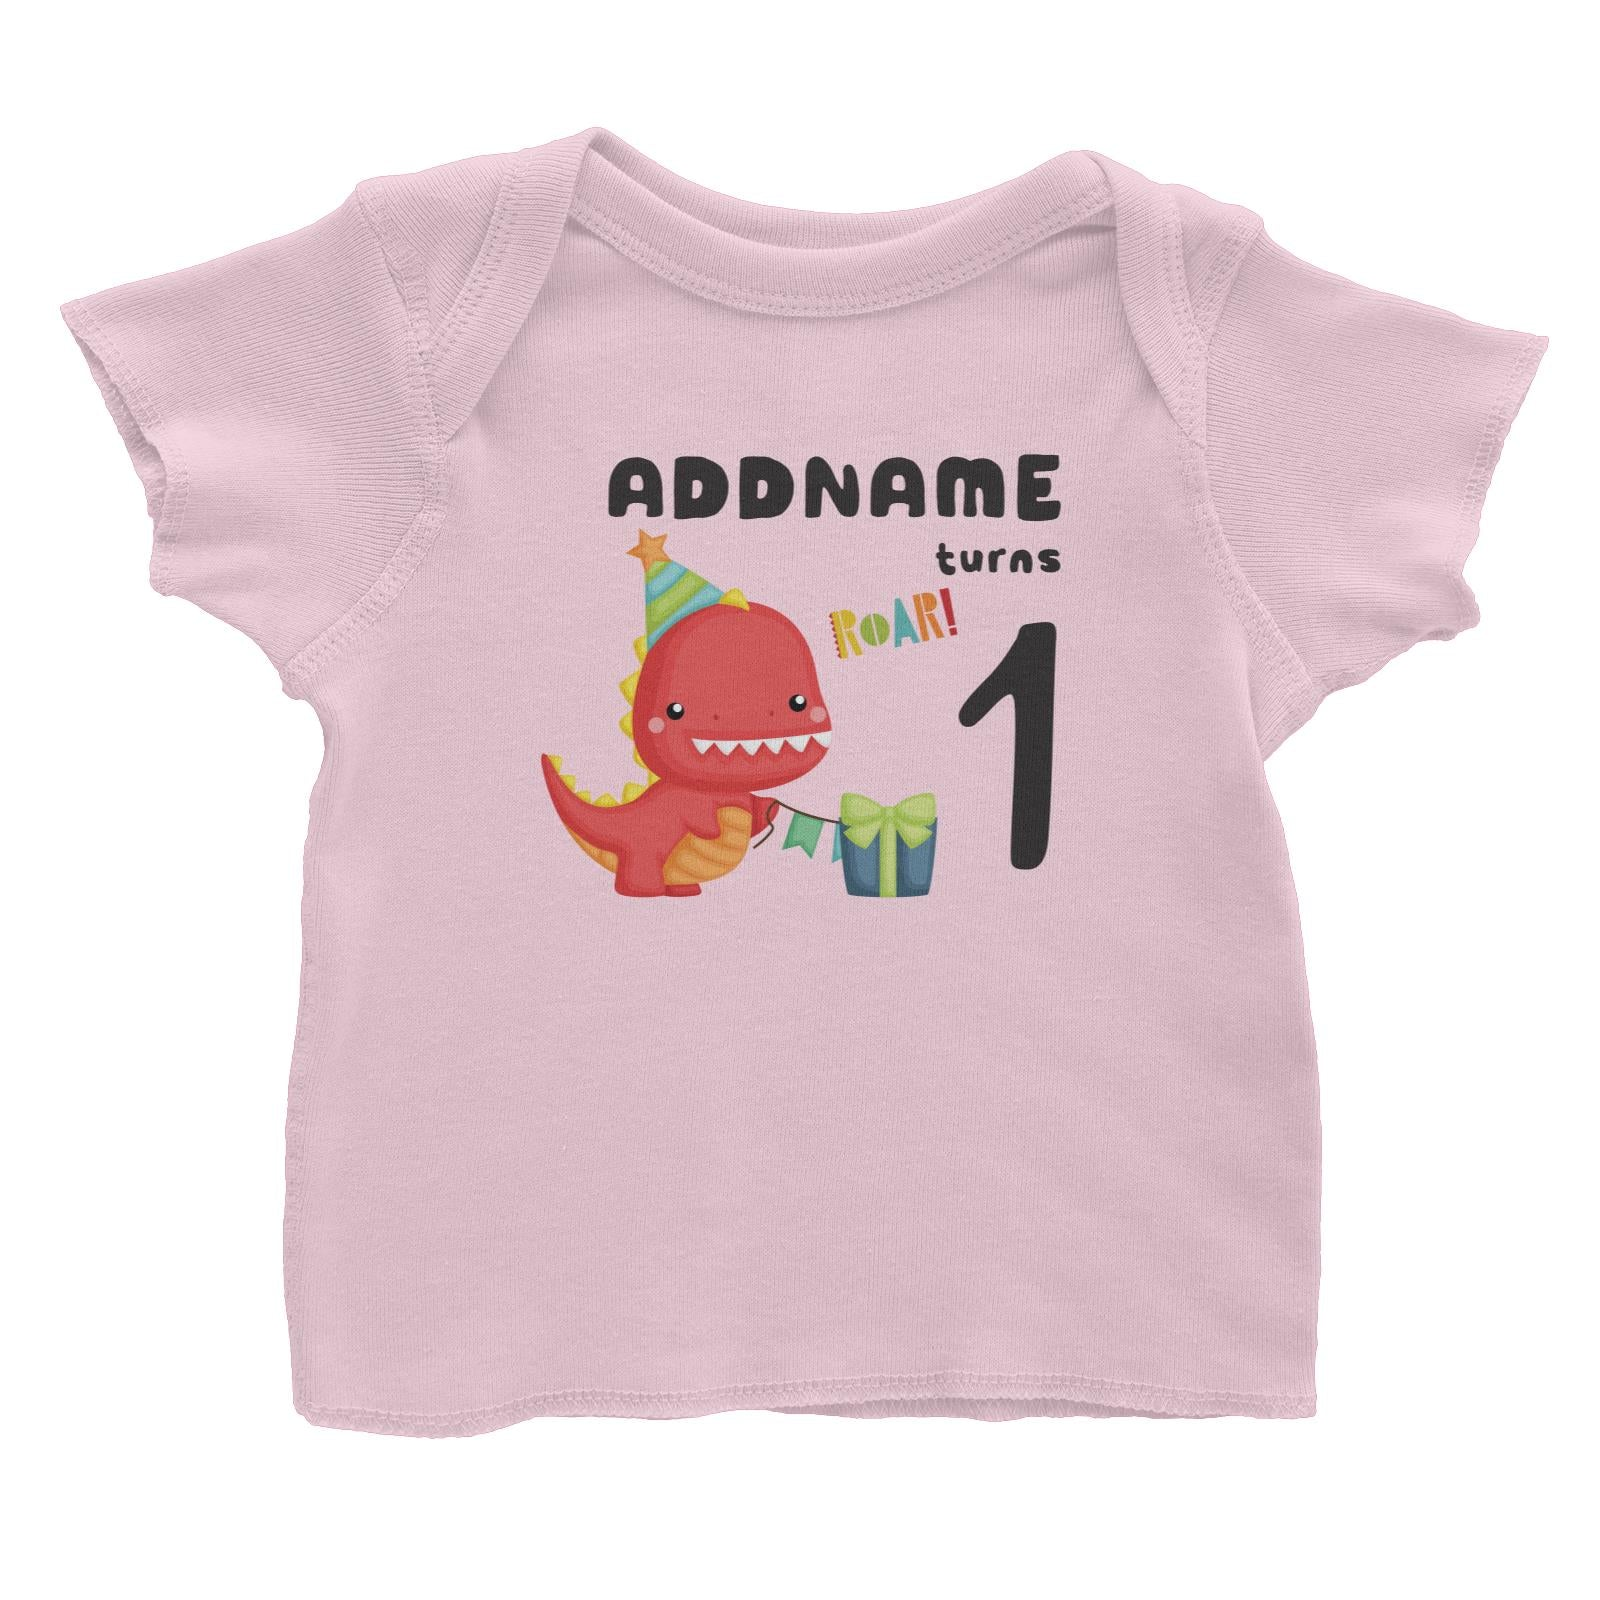 Birthday Dinosaur Happy Red Rex Wearing Party Hat Addname Turns 1 Baby T-Shirt